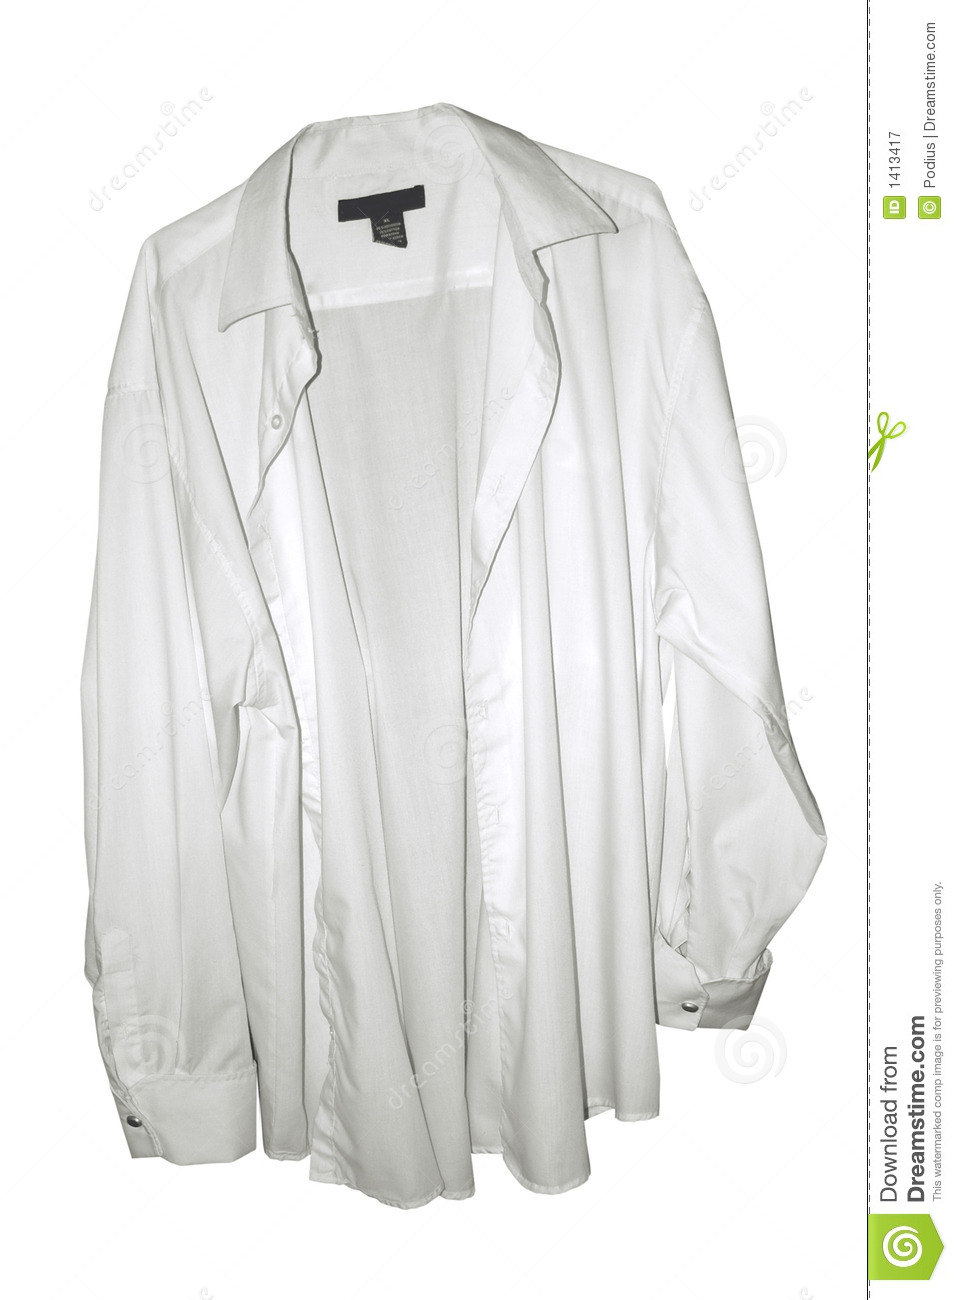 White dress shirt stock image image of cleaning blouse for How to clean white dress shirts